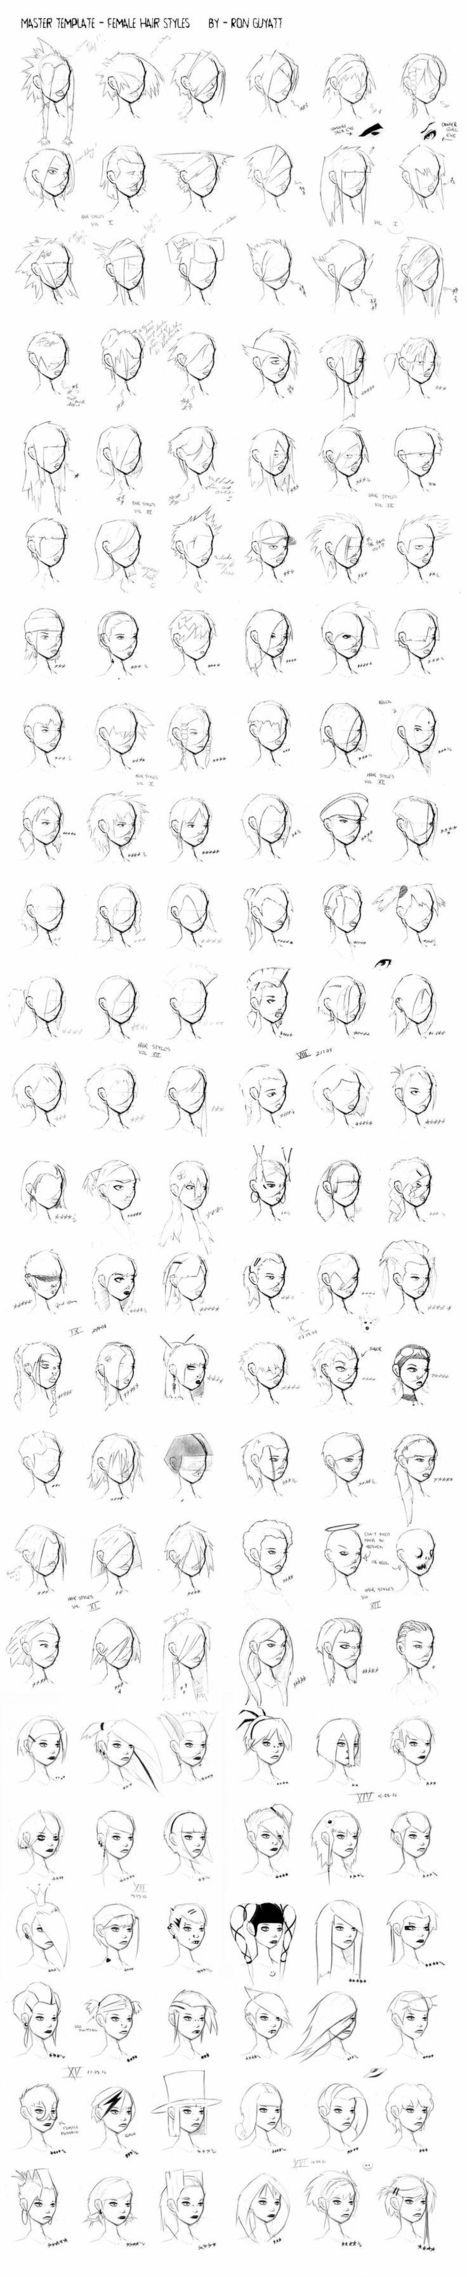 hair drawing' in Drawing References and Resources